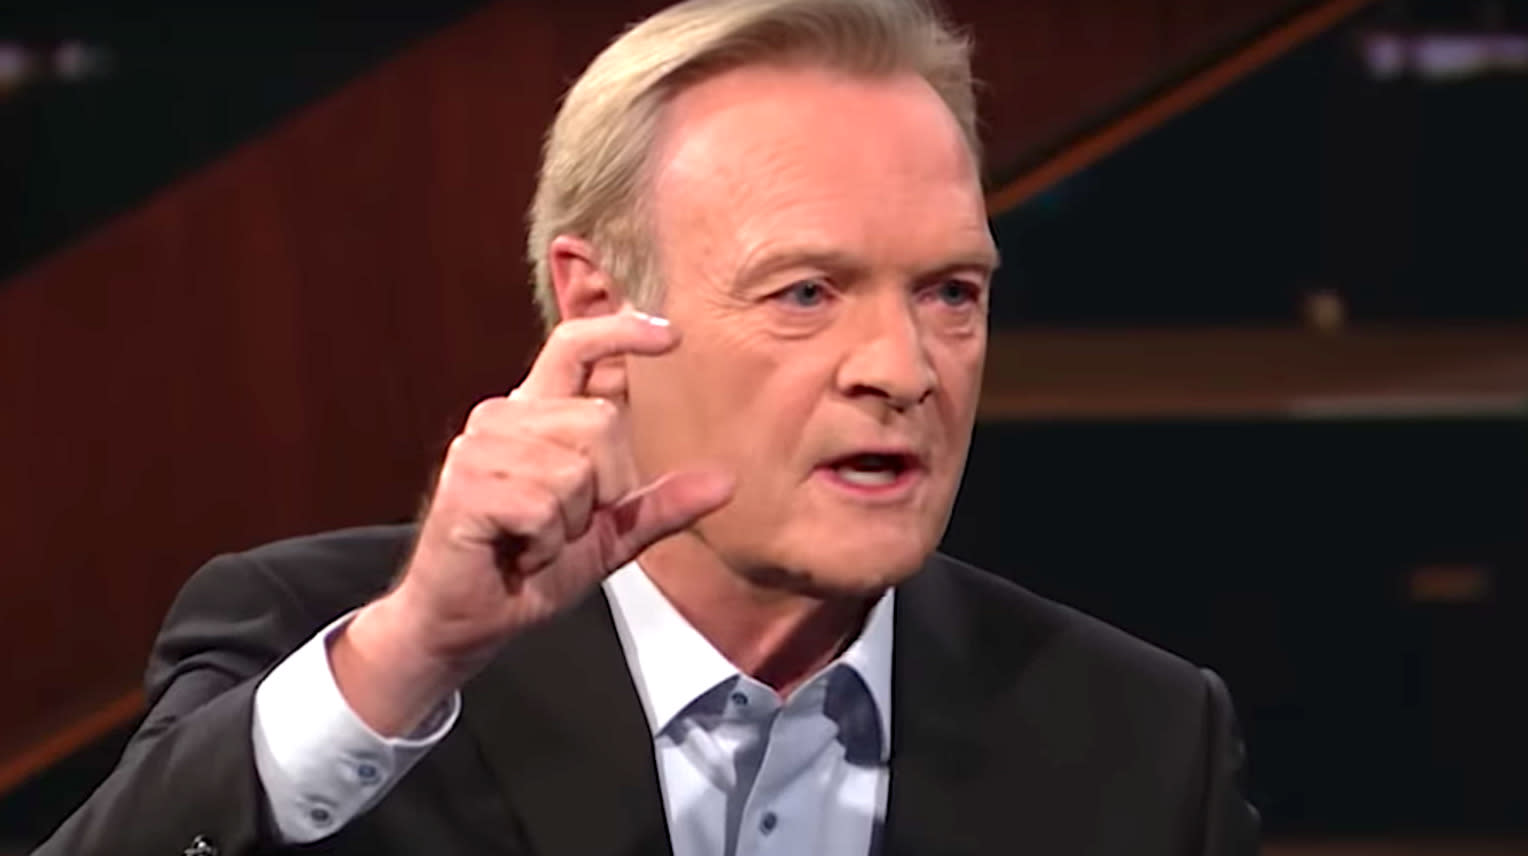 Lawrence O'Donnell Predicts The Humiliating Way Donald Trump's Presidency May End